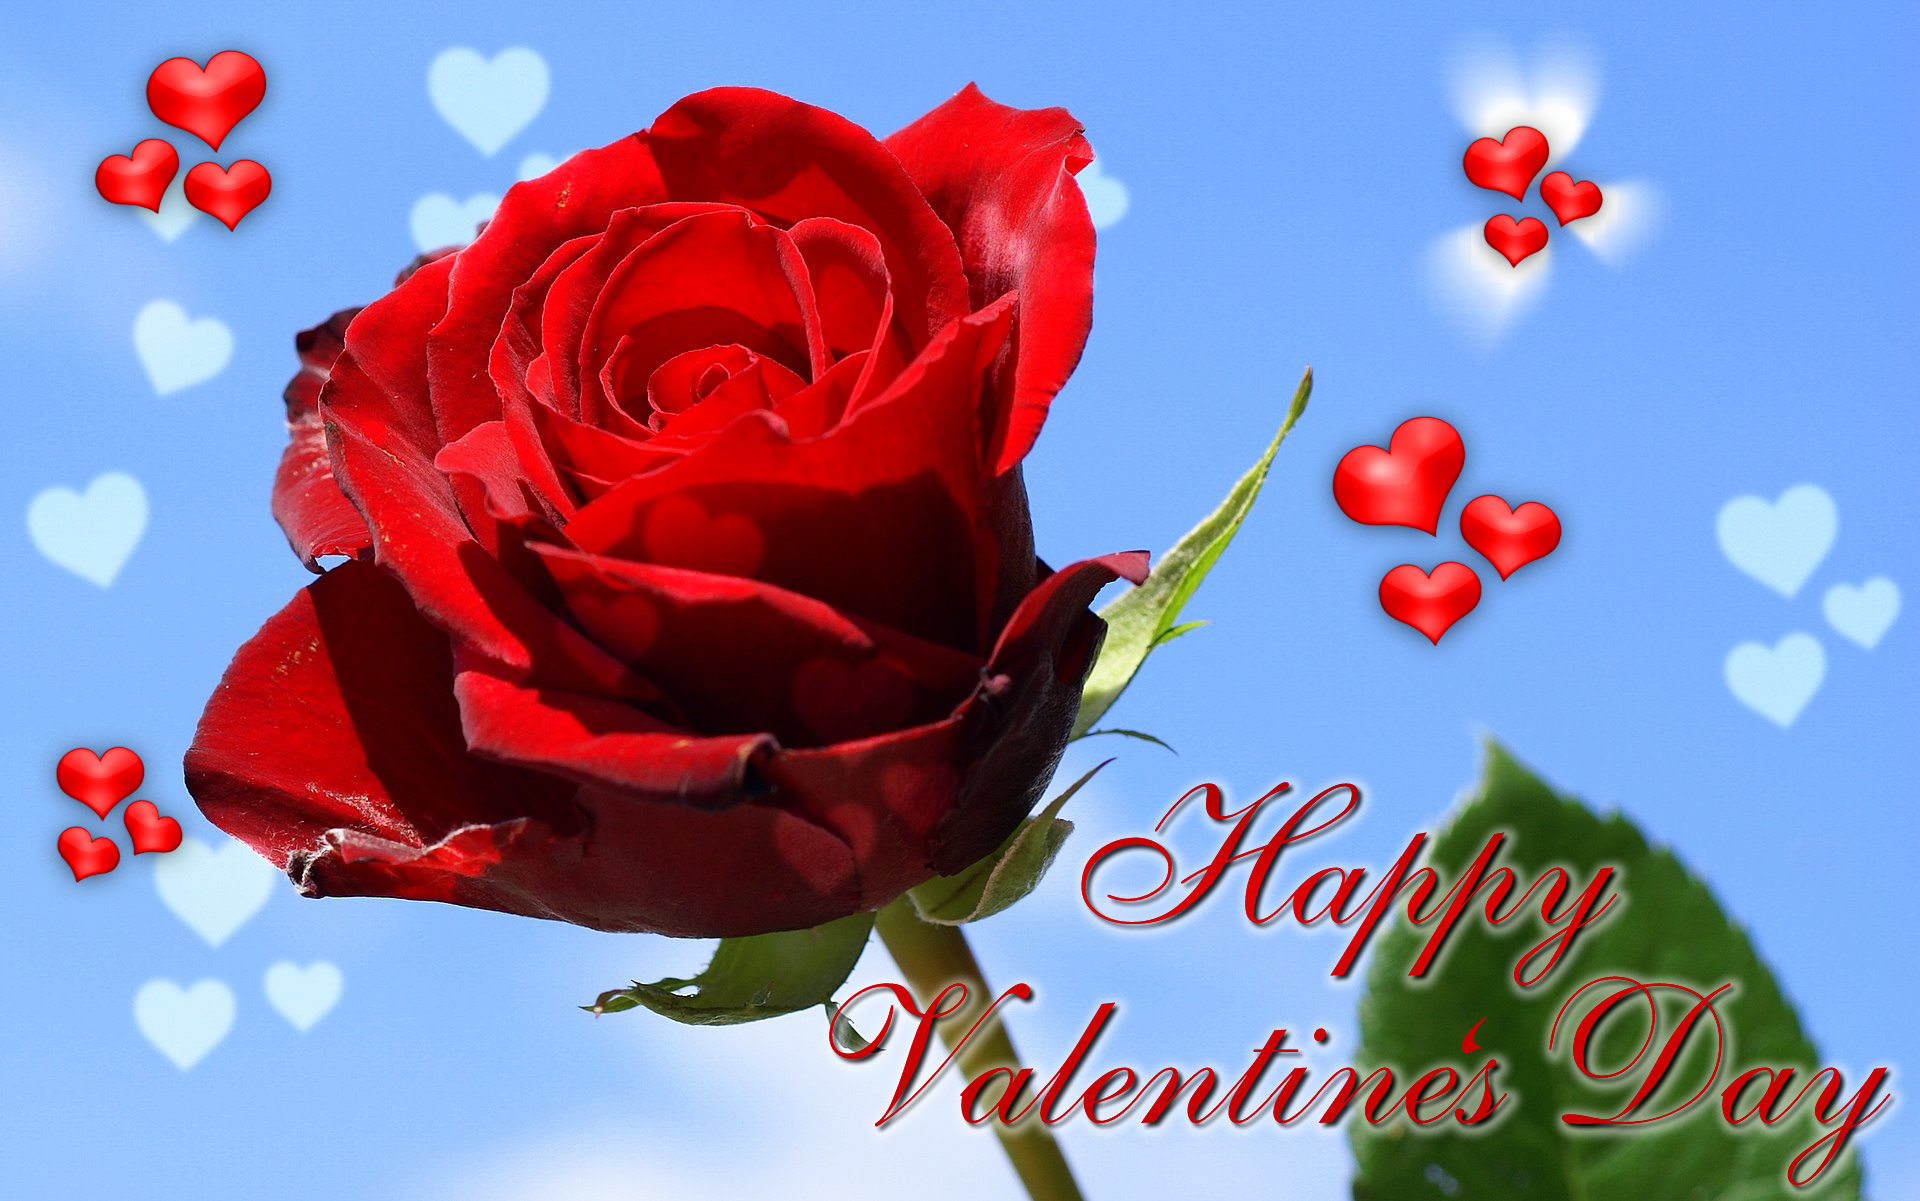 Love Wallpaper Twitter : Love Wallpapers Romantic Backgrounds Twitter Valentine Day ...